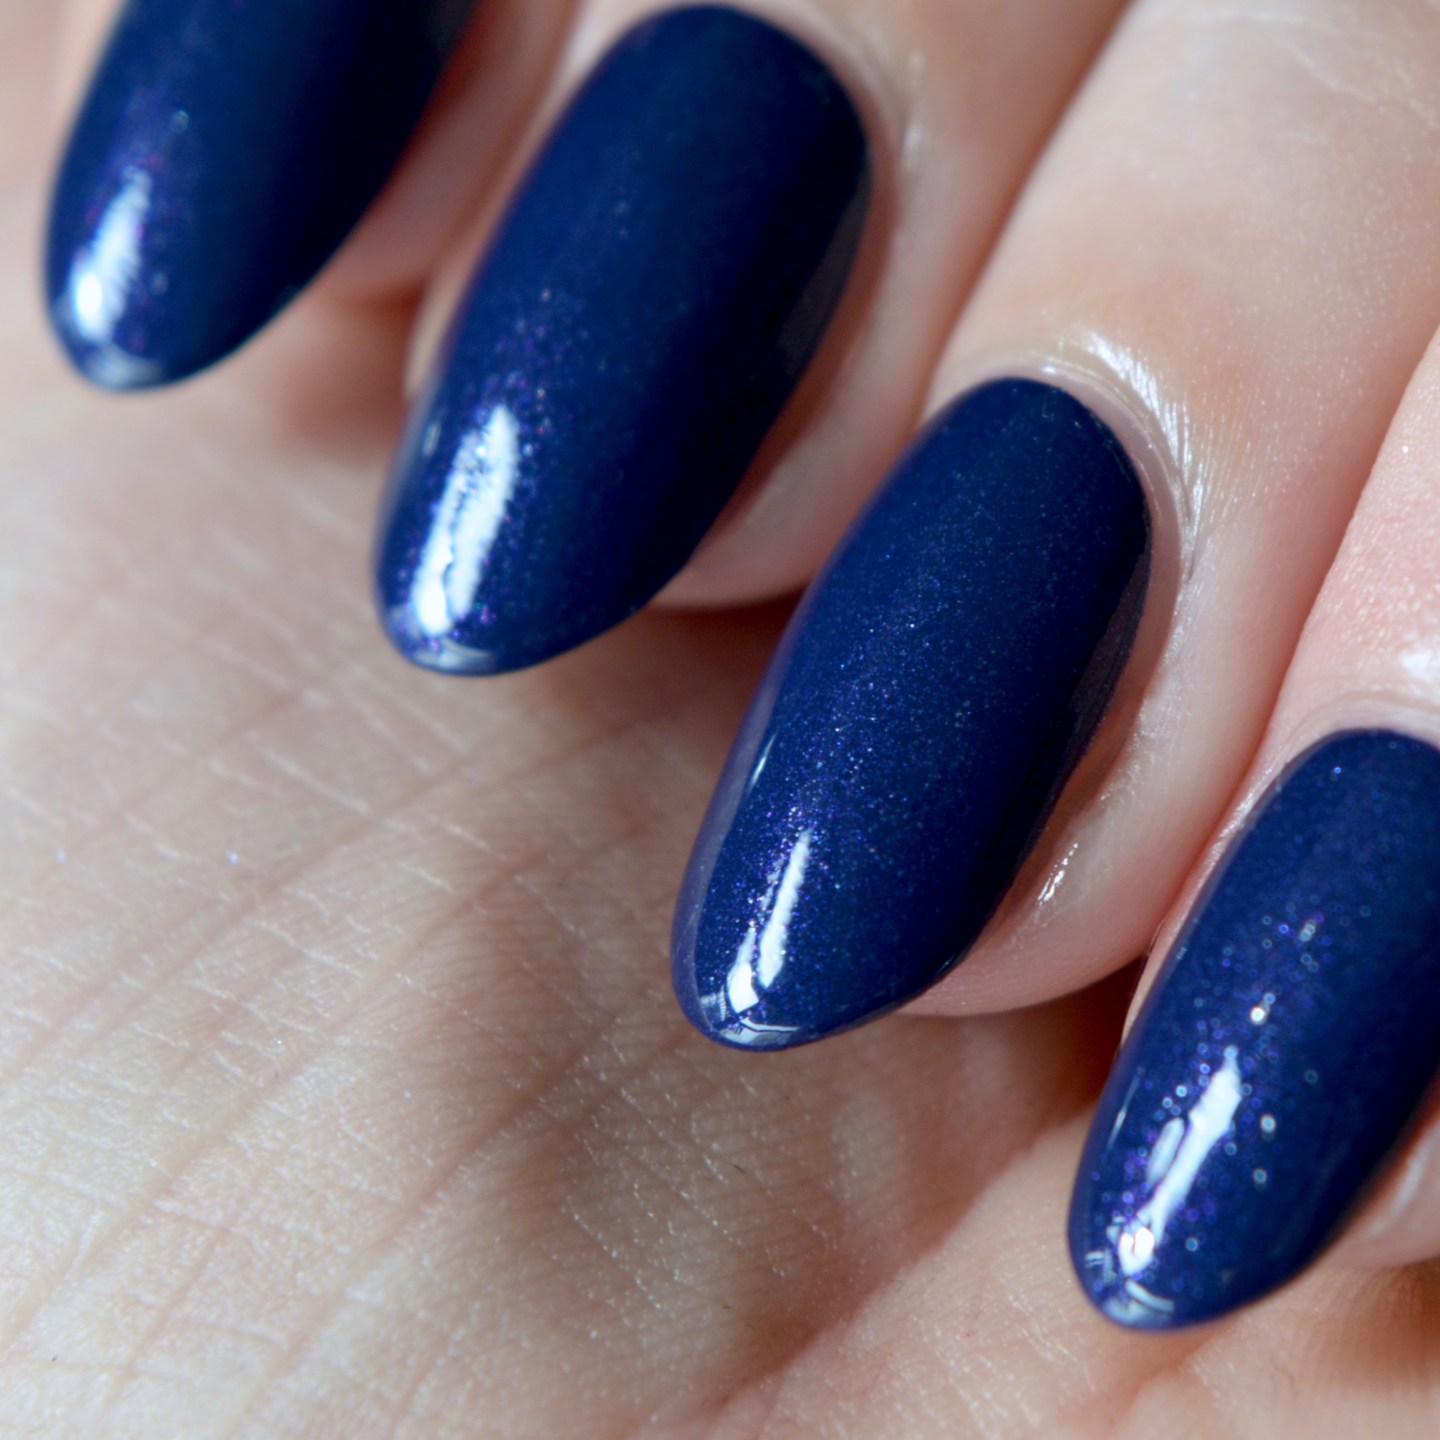 Essie x Rebecca Minkoff Leathers Collection 'In Hot Purse-uit' (with topcoat)